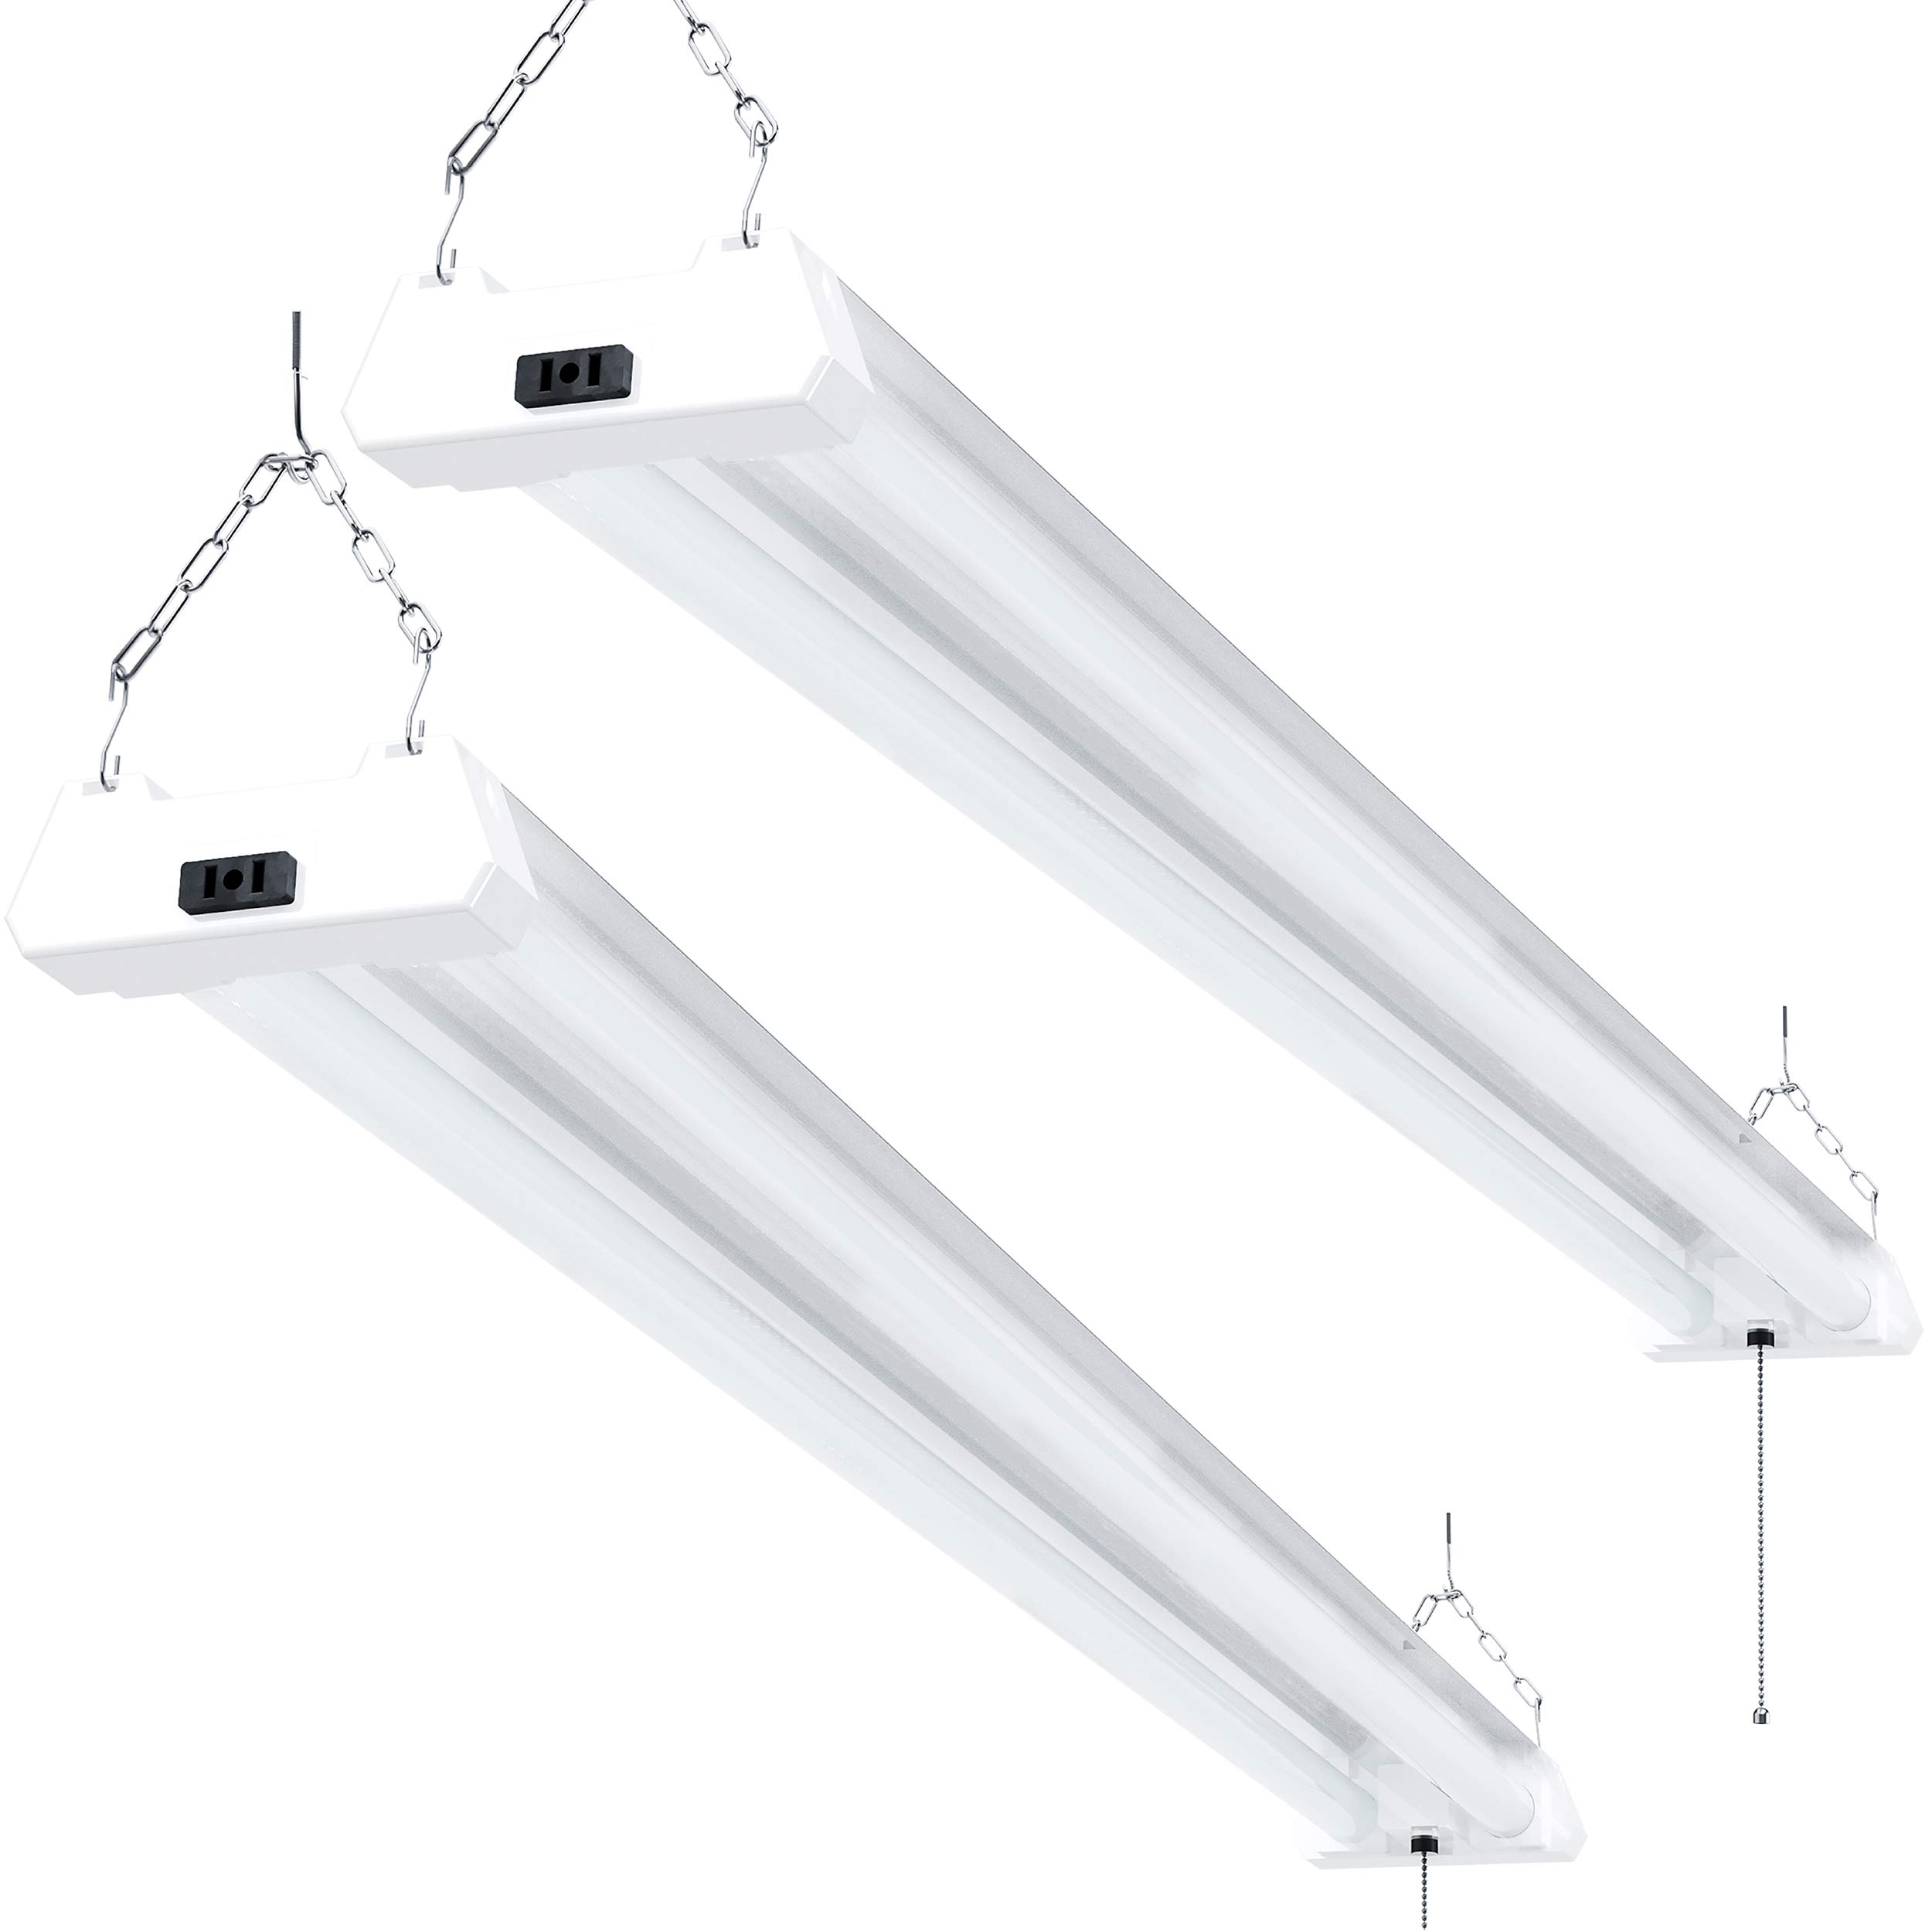 Sunco Lighting 2 Pack LED Utility Shop Light, 4 FT, Linkable Integrated Fixture, 40W=260W, 5000K Daylight, 4100 LM, Frosted Lens, Surface/Suspension Mount, Pull Chain, Garage - ETL, Energy Star